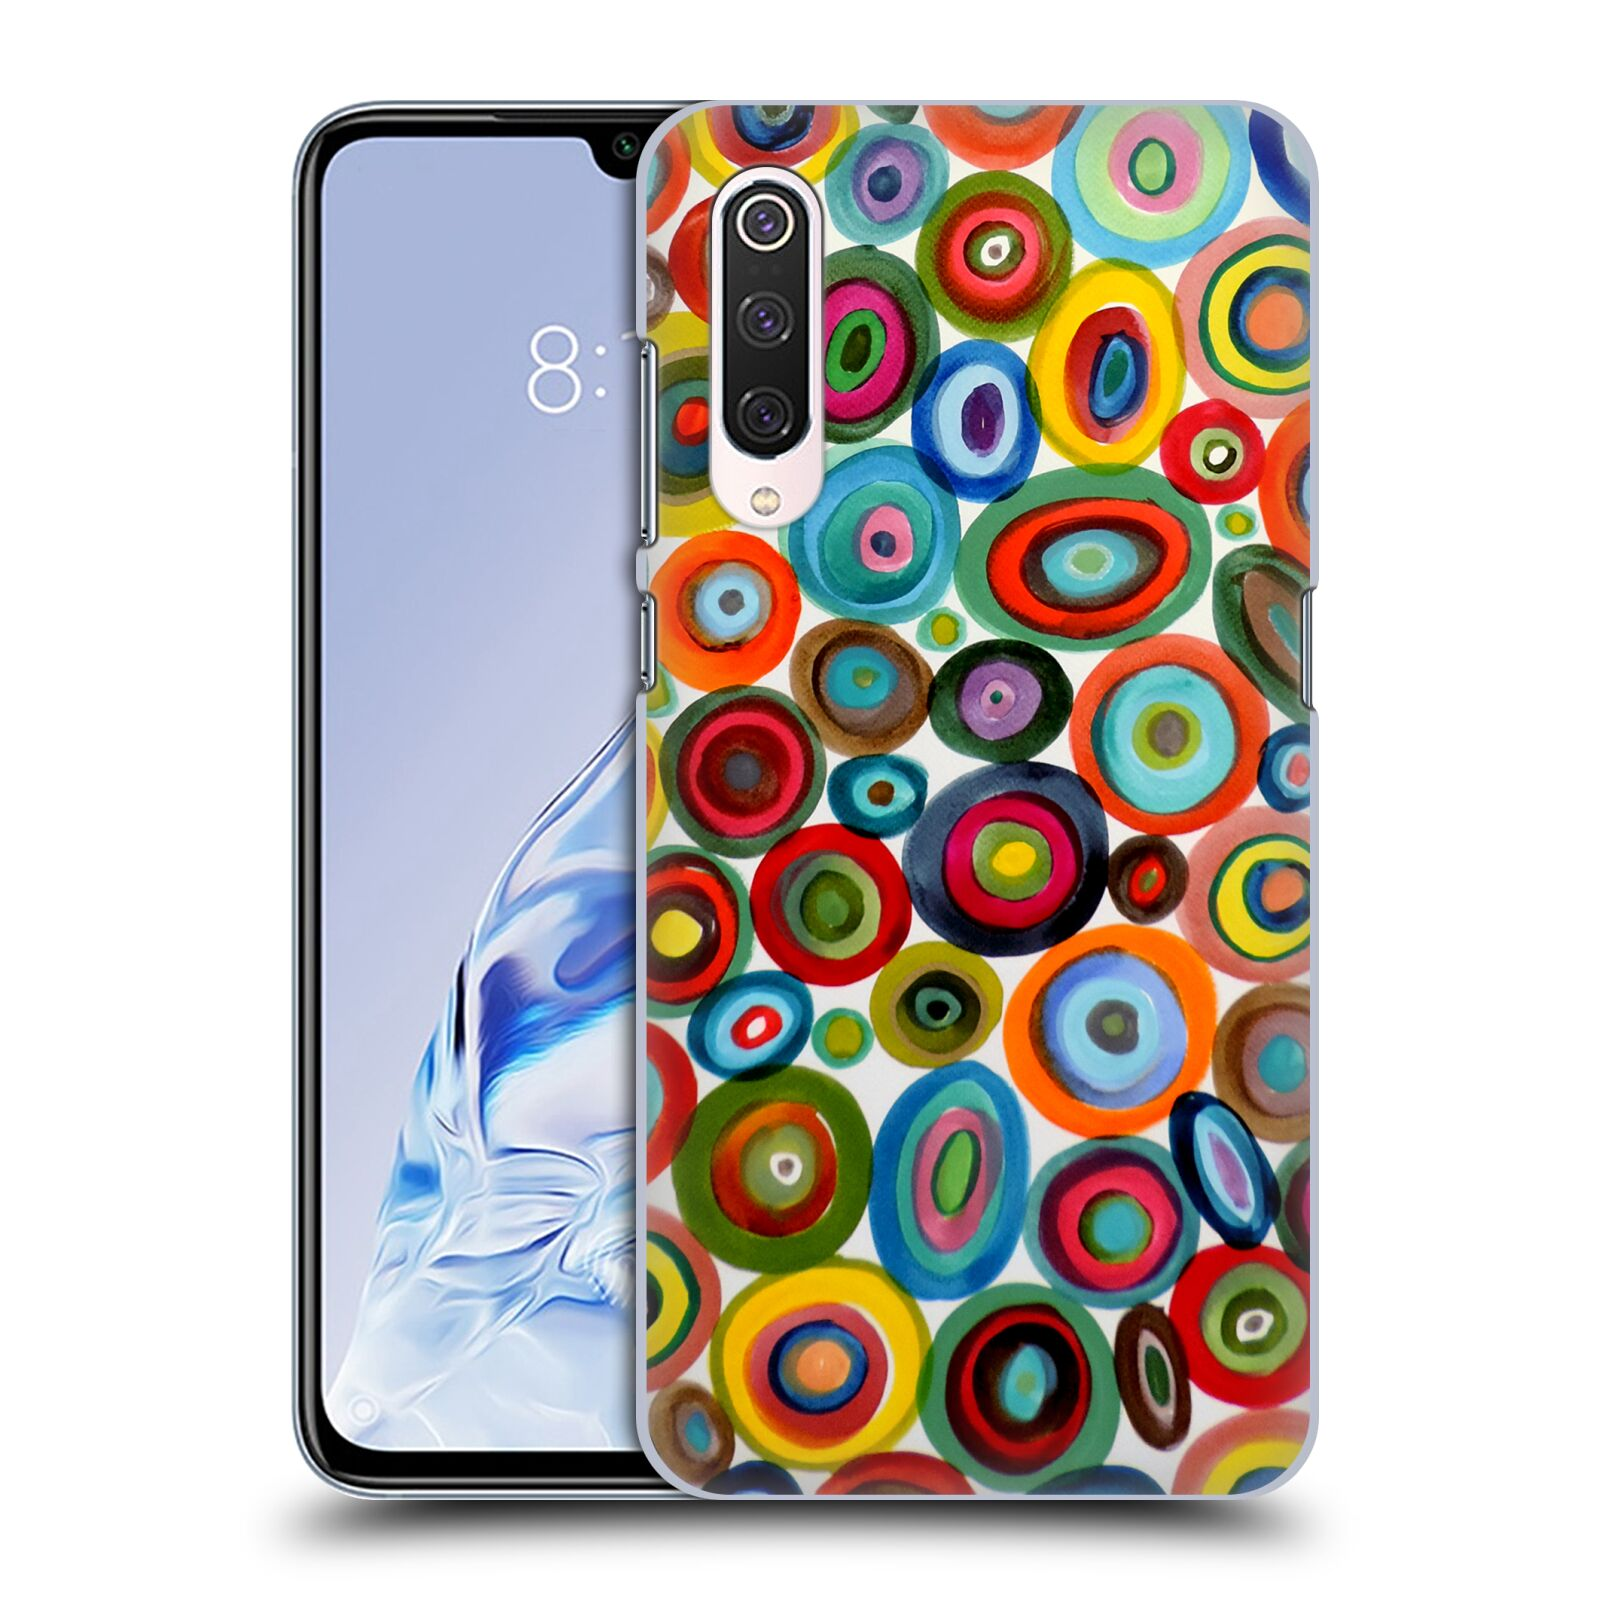 Official Sylvie Demers Abstraction Club Soda Case for Xiaomi Mi 9 Pro / 5G